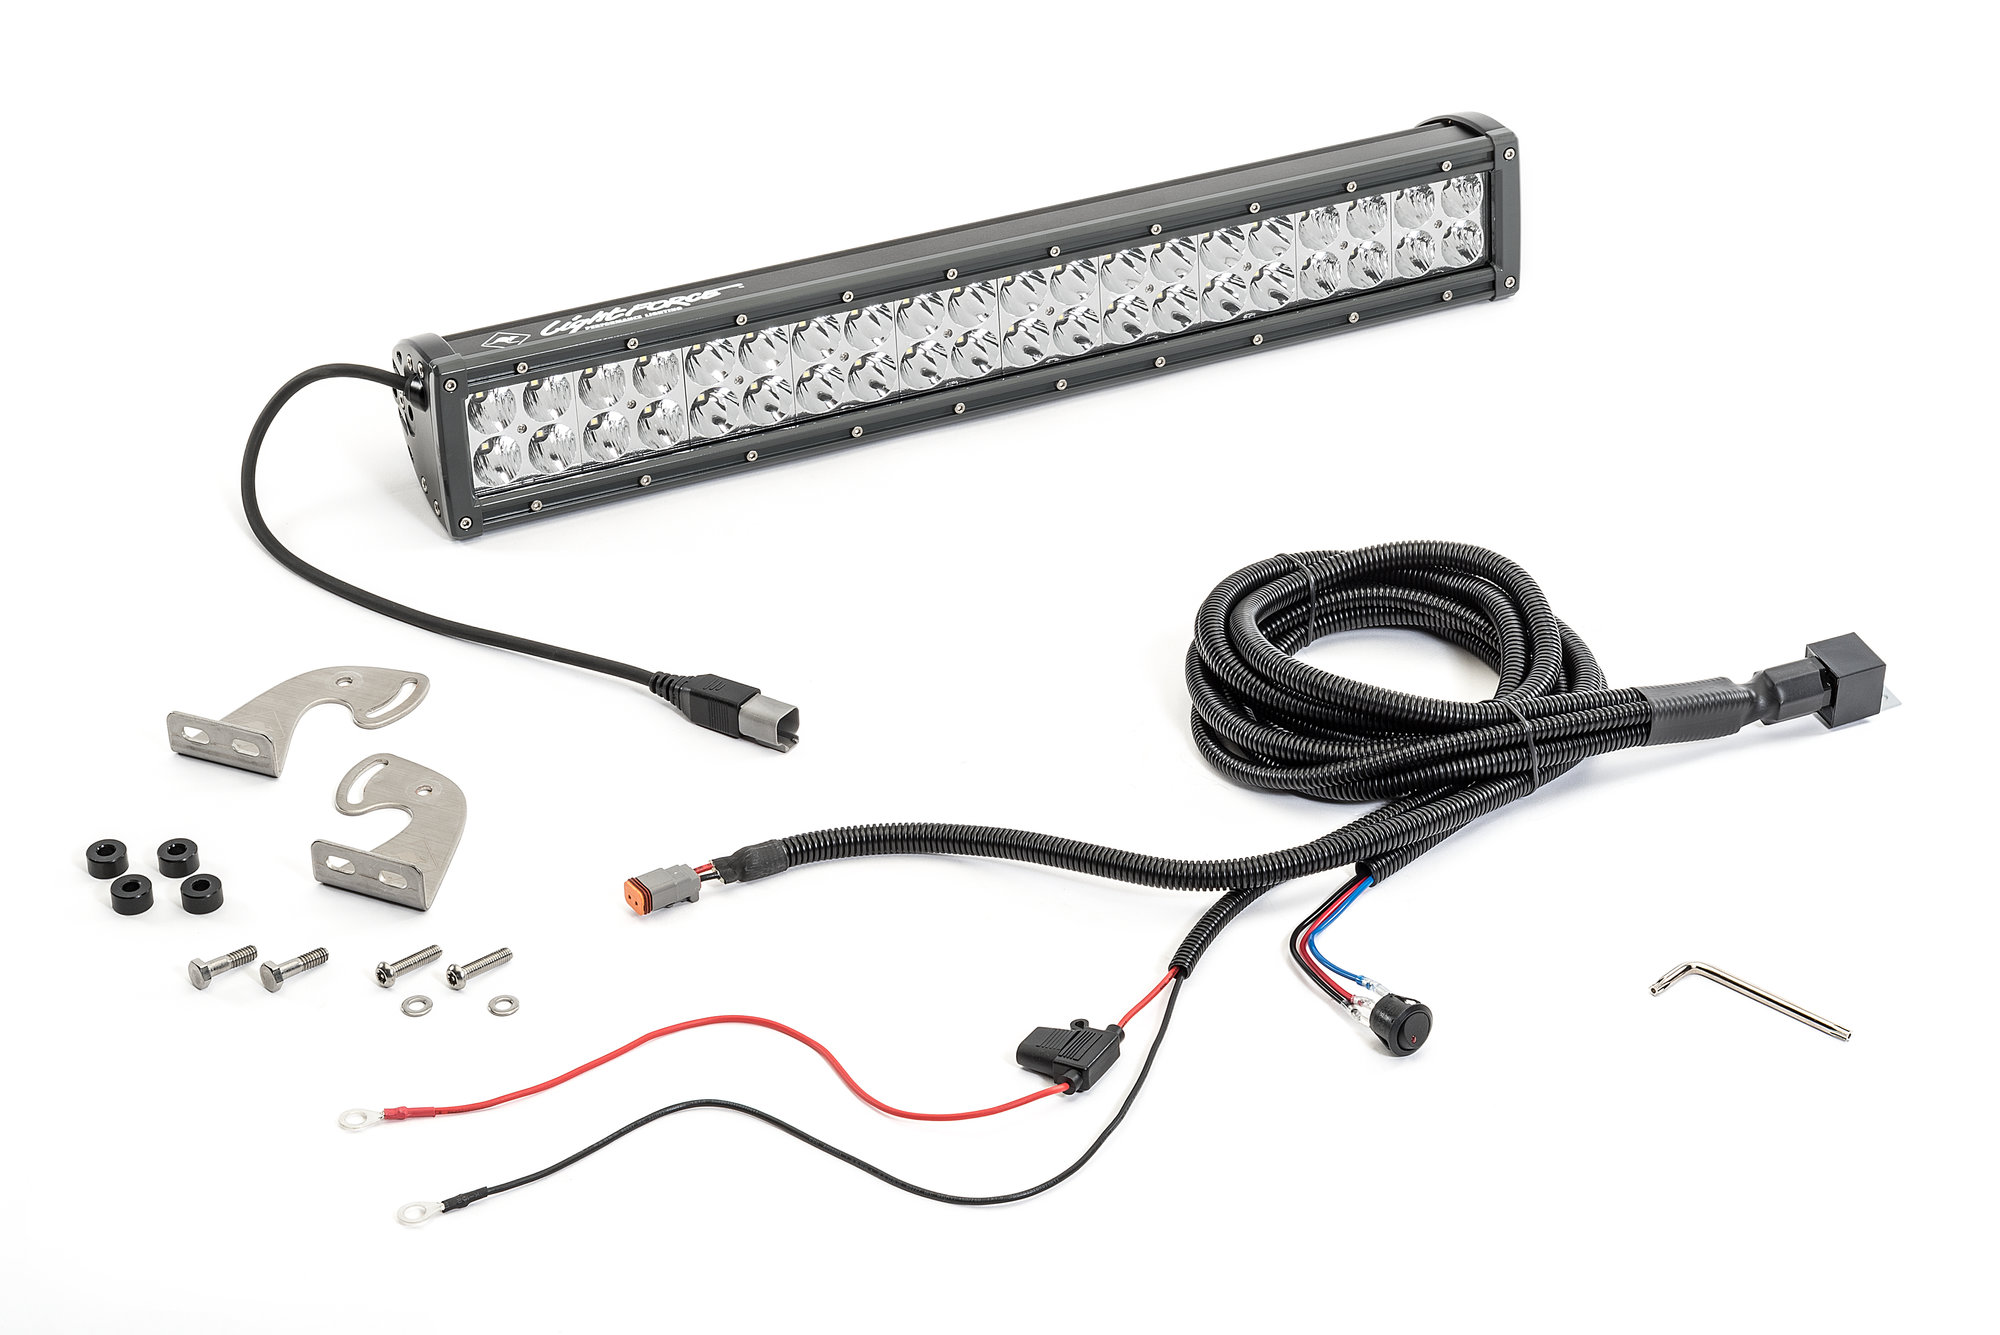 Lightforce Le012 Dual Row 20 Led Bar